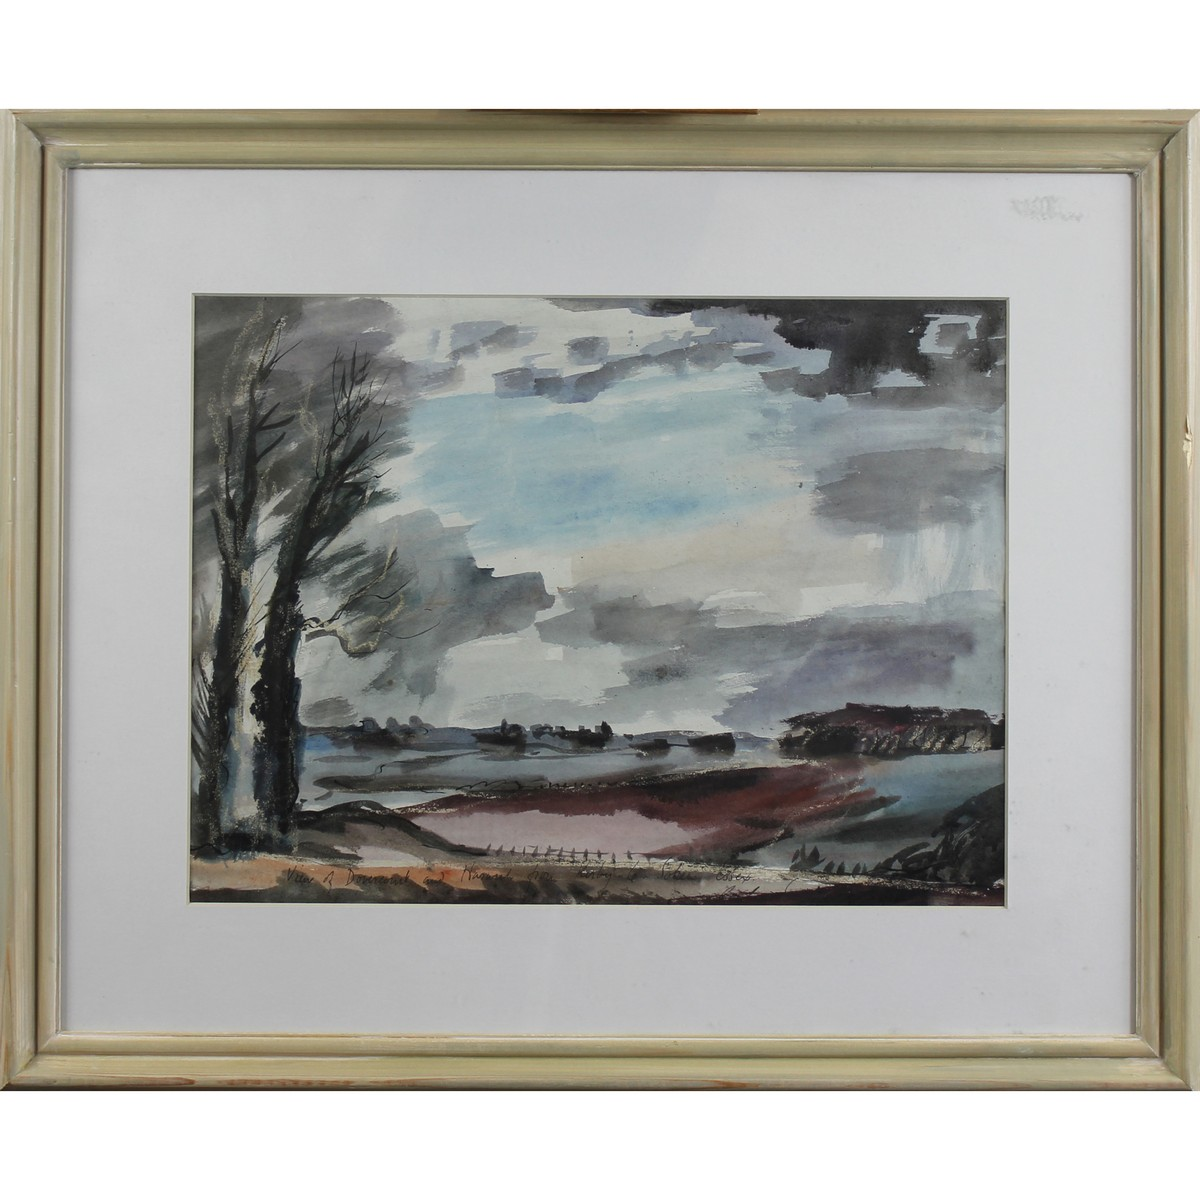 Lot 13 - Suddaby, Rowland 1912-1972 British AR, View of Dovercourt and Harwich from Kirby le Solen, Essex.